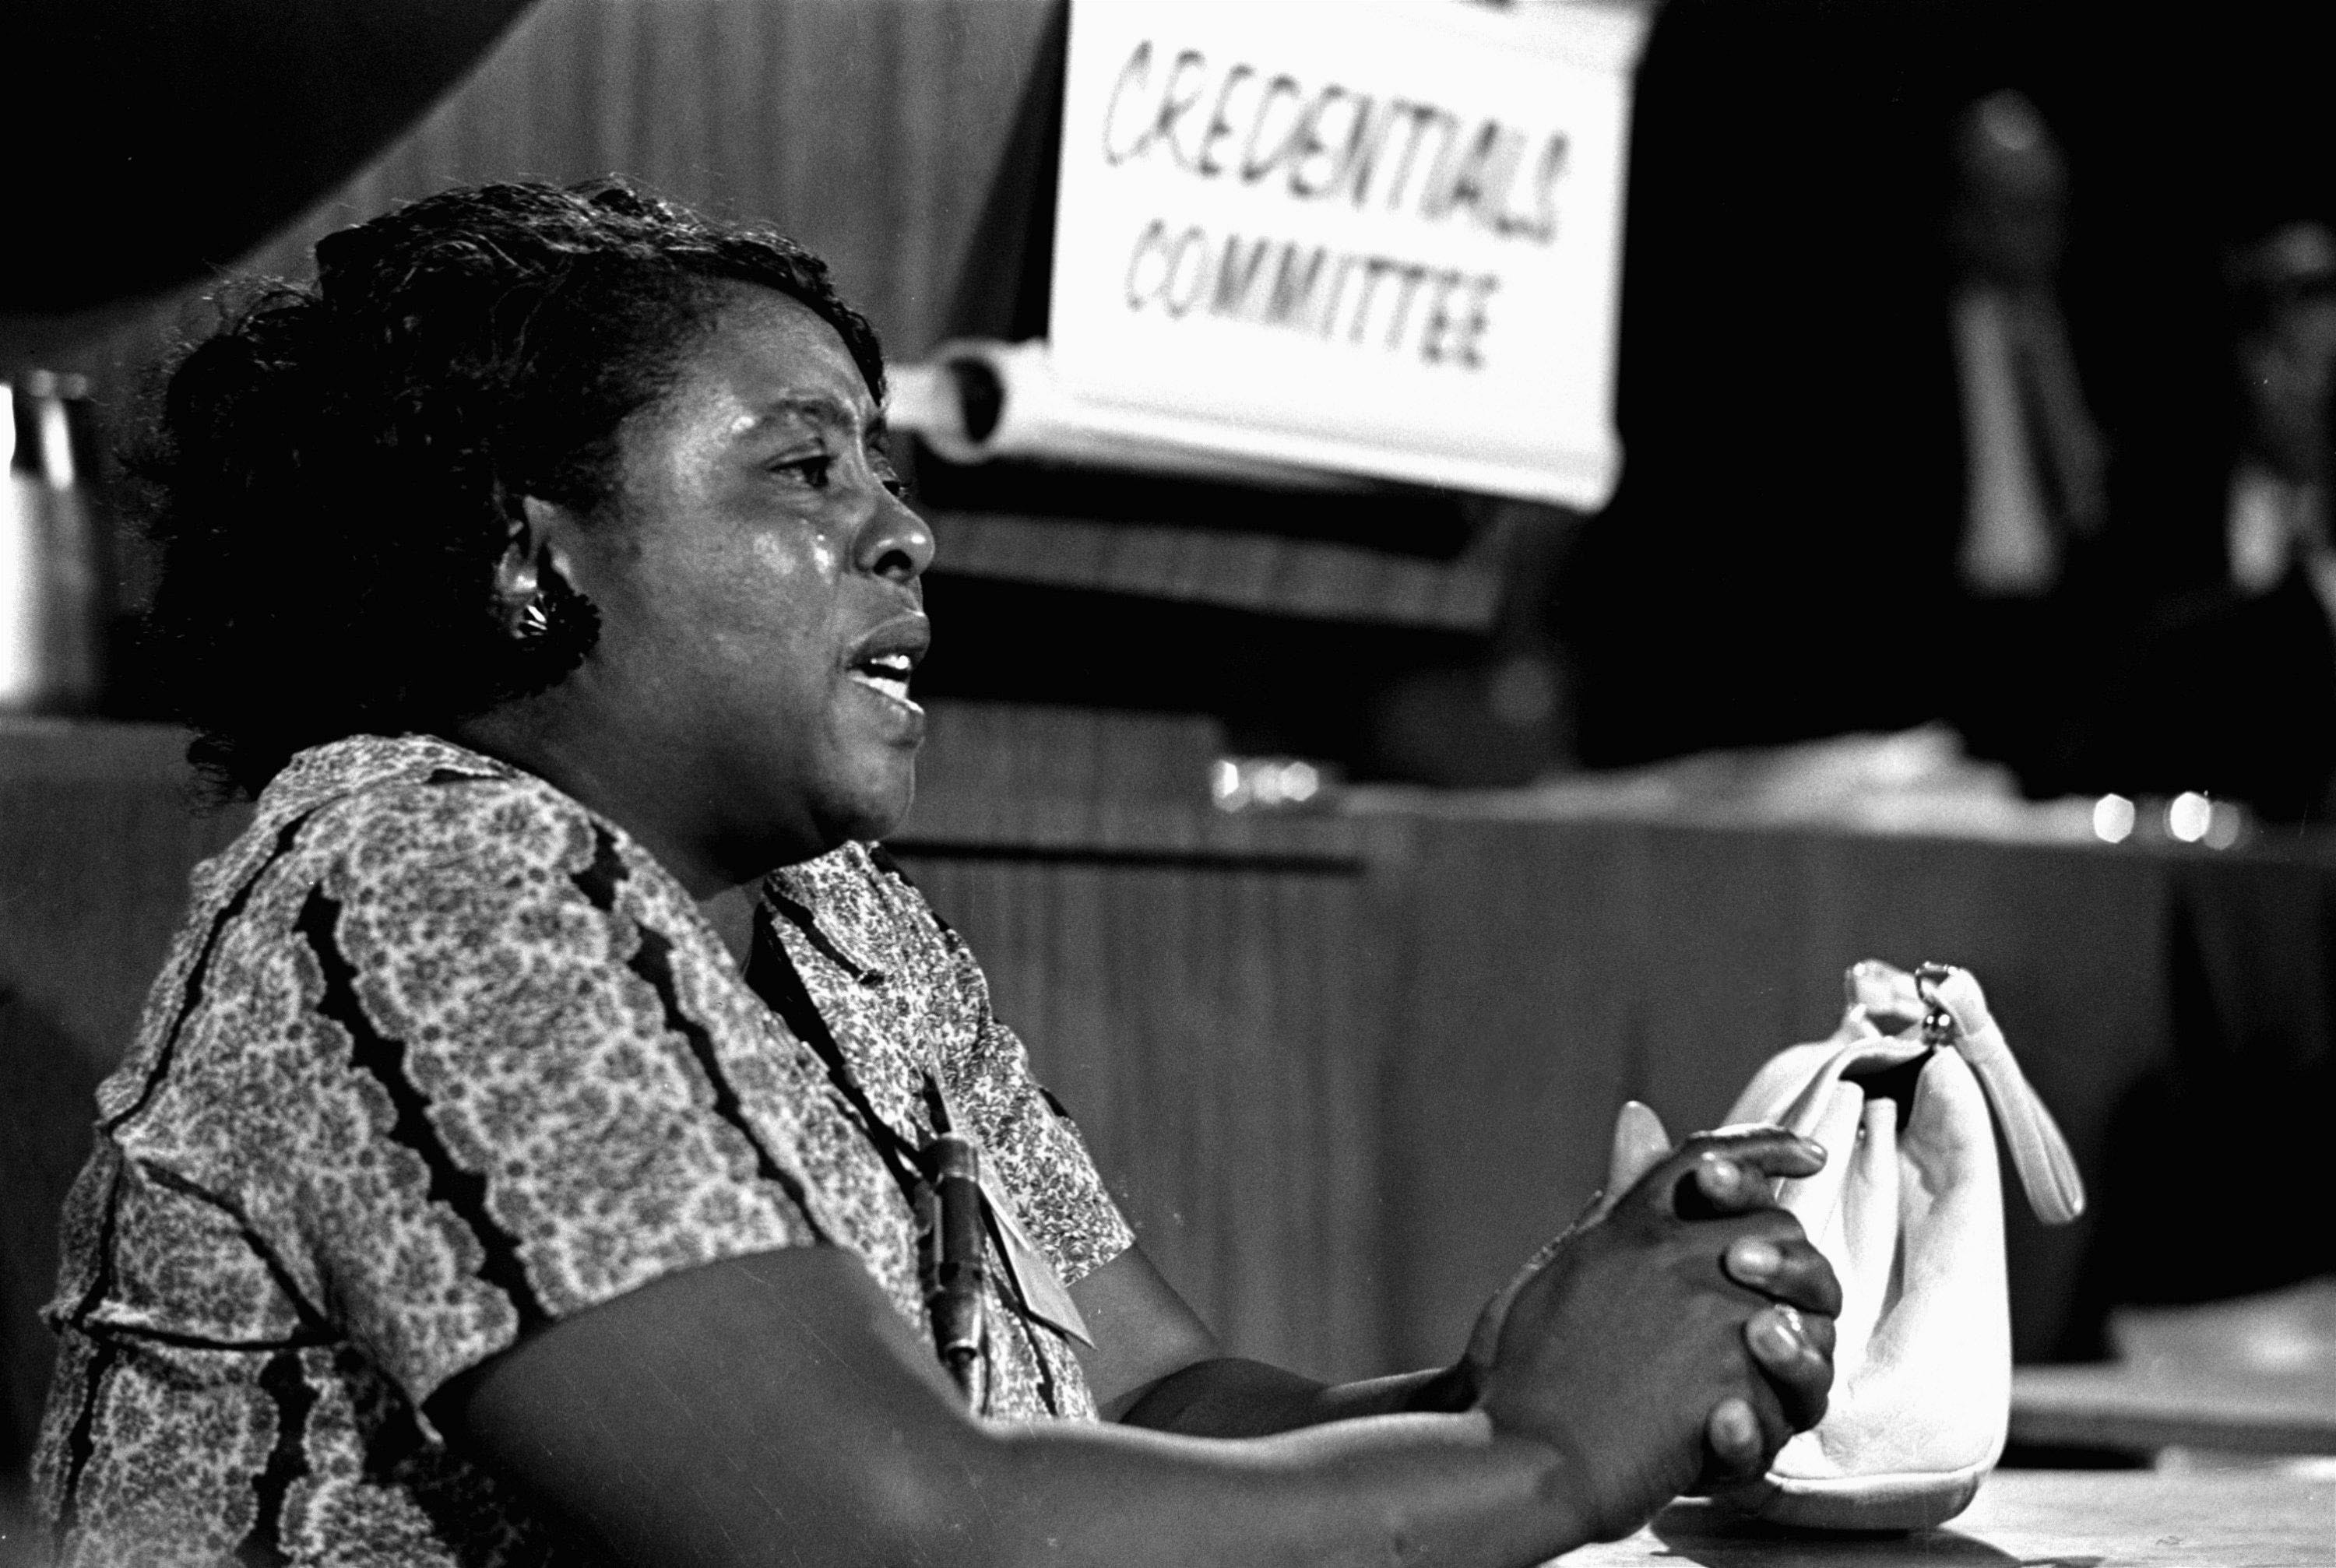 Fannie Lou Hamer, a leader of the Freedom Democratic Party, speaks before the Credentials Committee of the Democratic National Convention in Atlantic City in 1964.